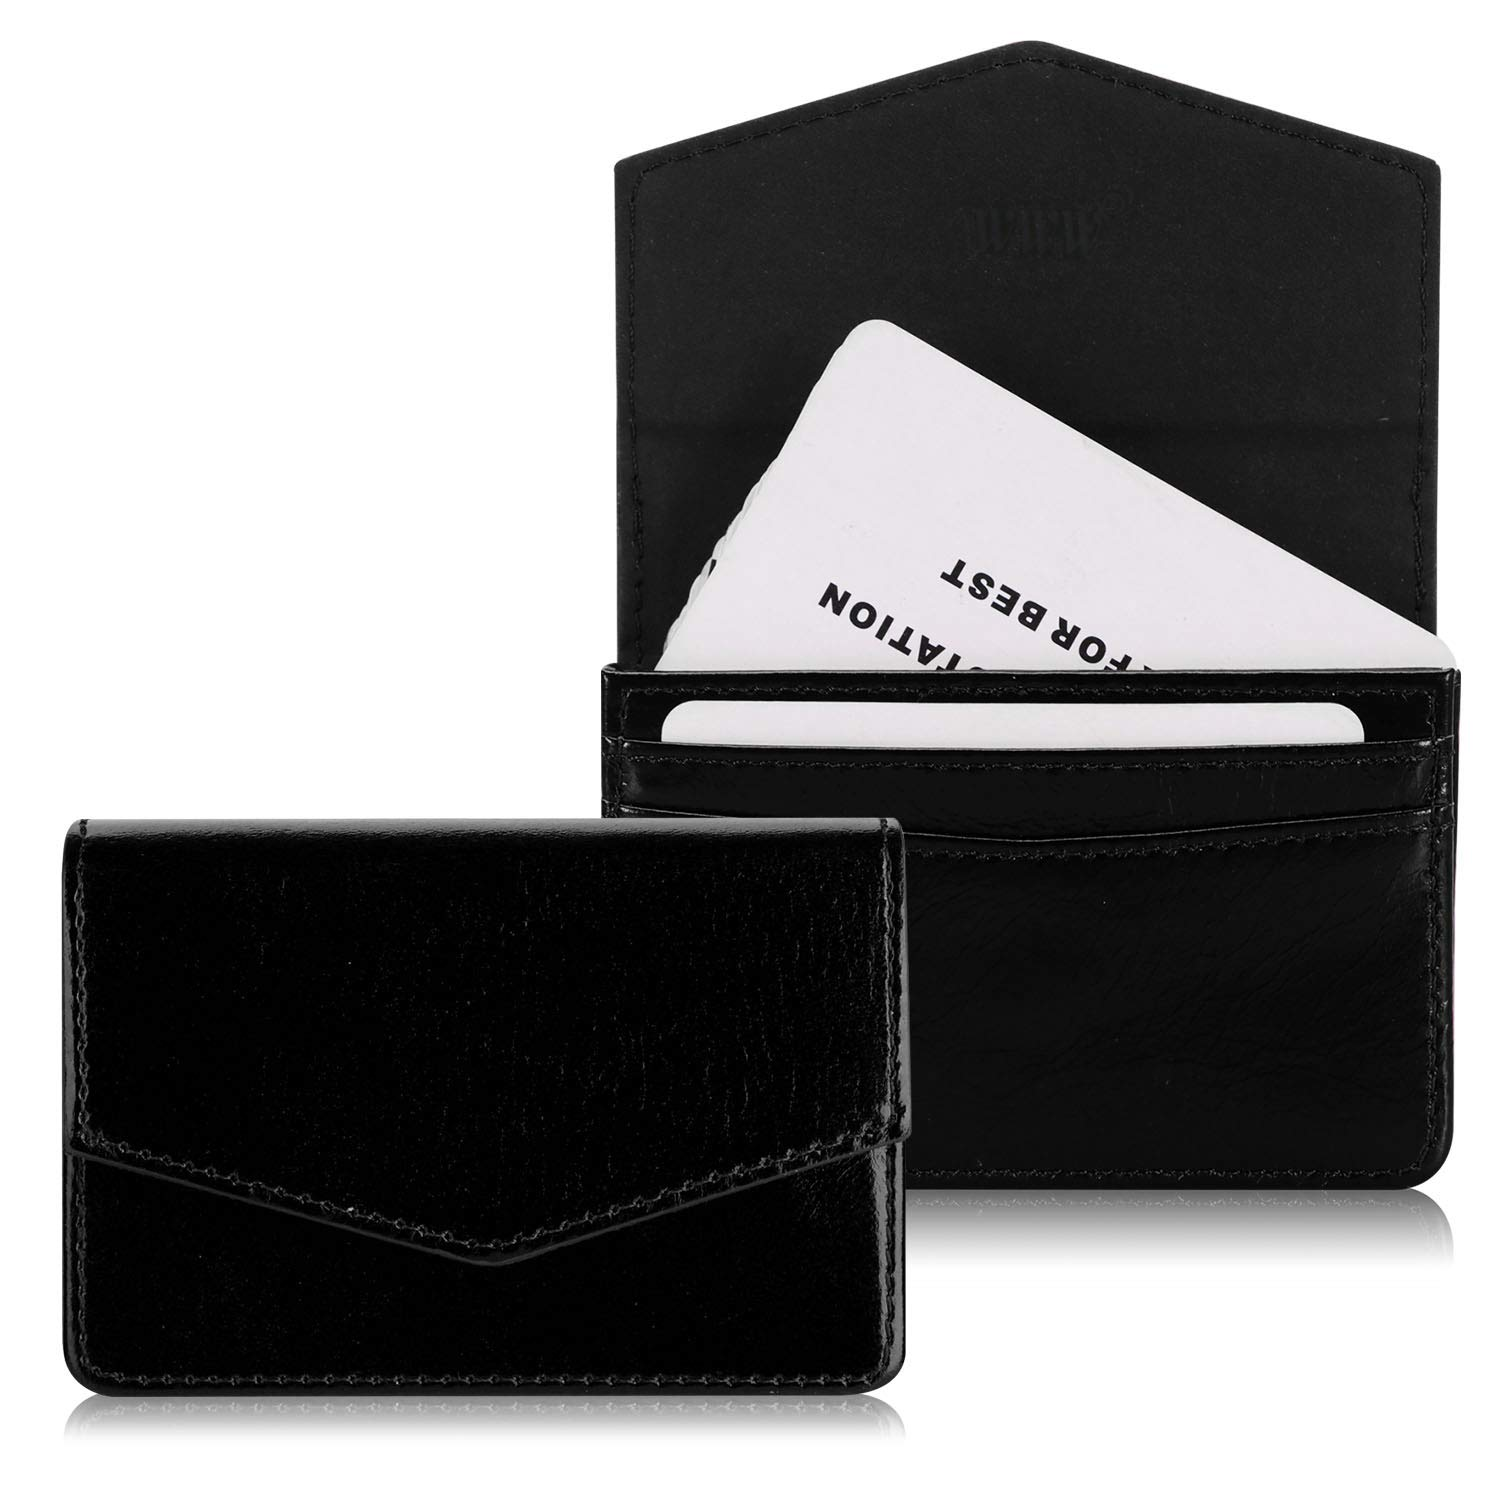 WWW Genuine Leather Business Card Holder Business Card Case with Magnetic Shut for Men & Women, Holds 30 Business Cards Black